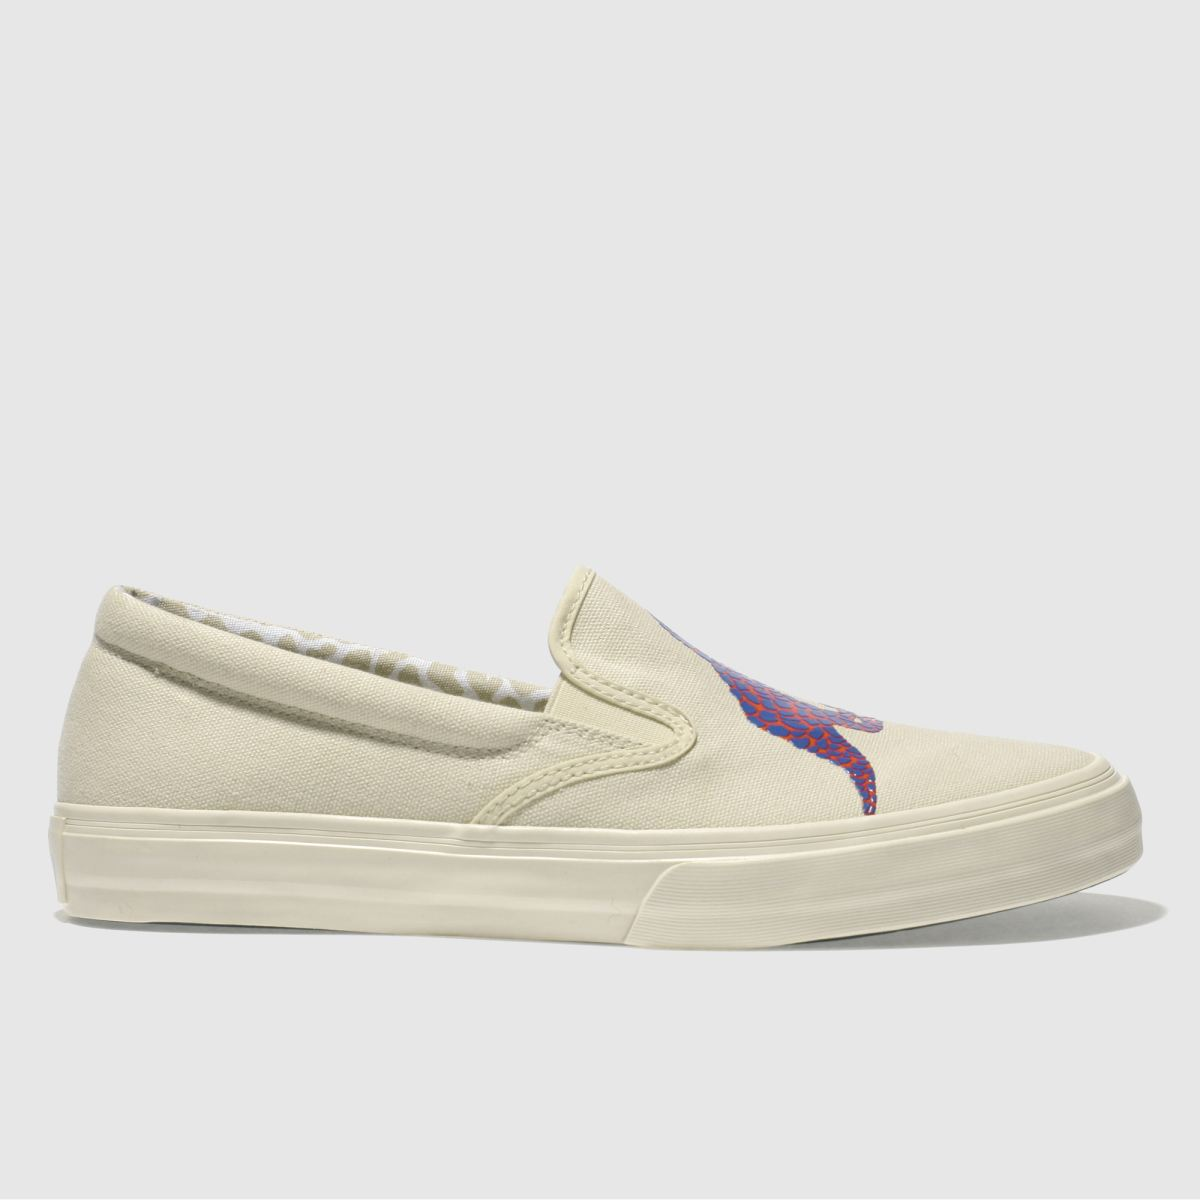 paul smith shoe ps Paul Smith Shoe Ps Stone Clyde Trainers